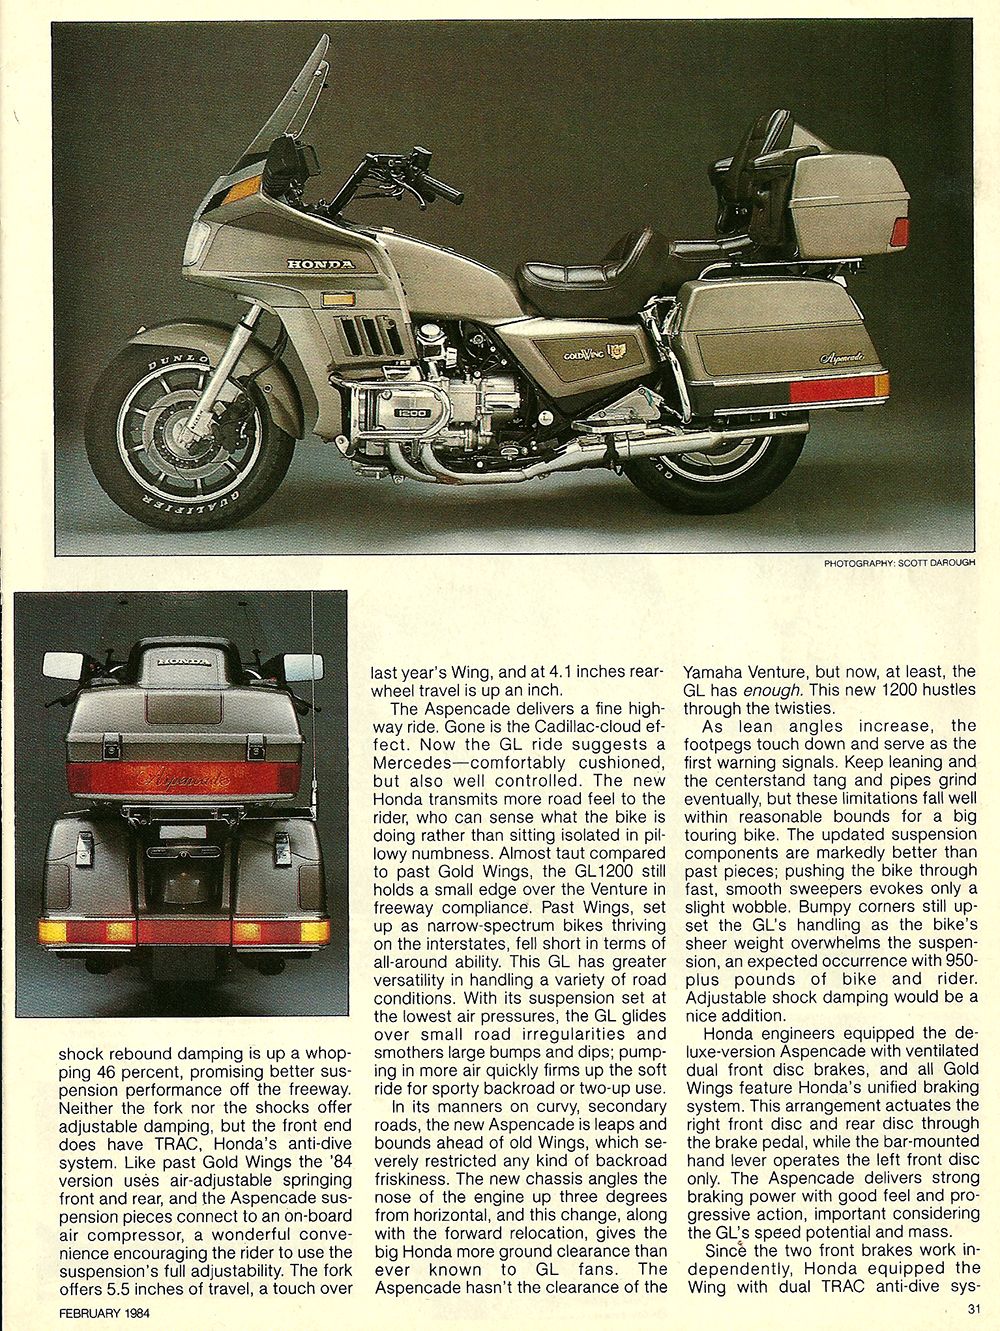 1984 Honda GL1200A Gold Wing Aspencade road test 4.jpg